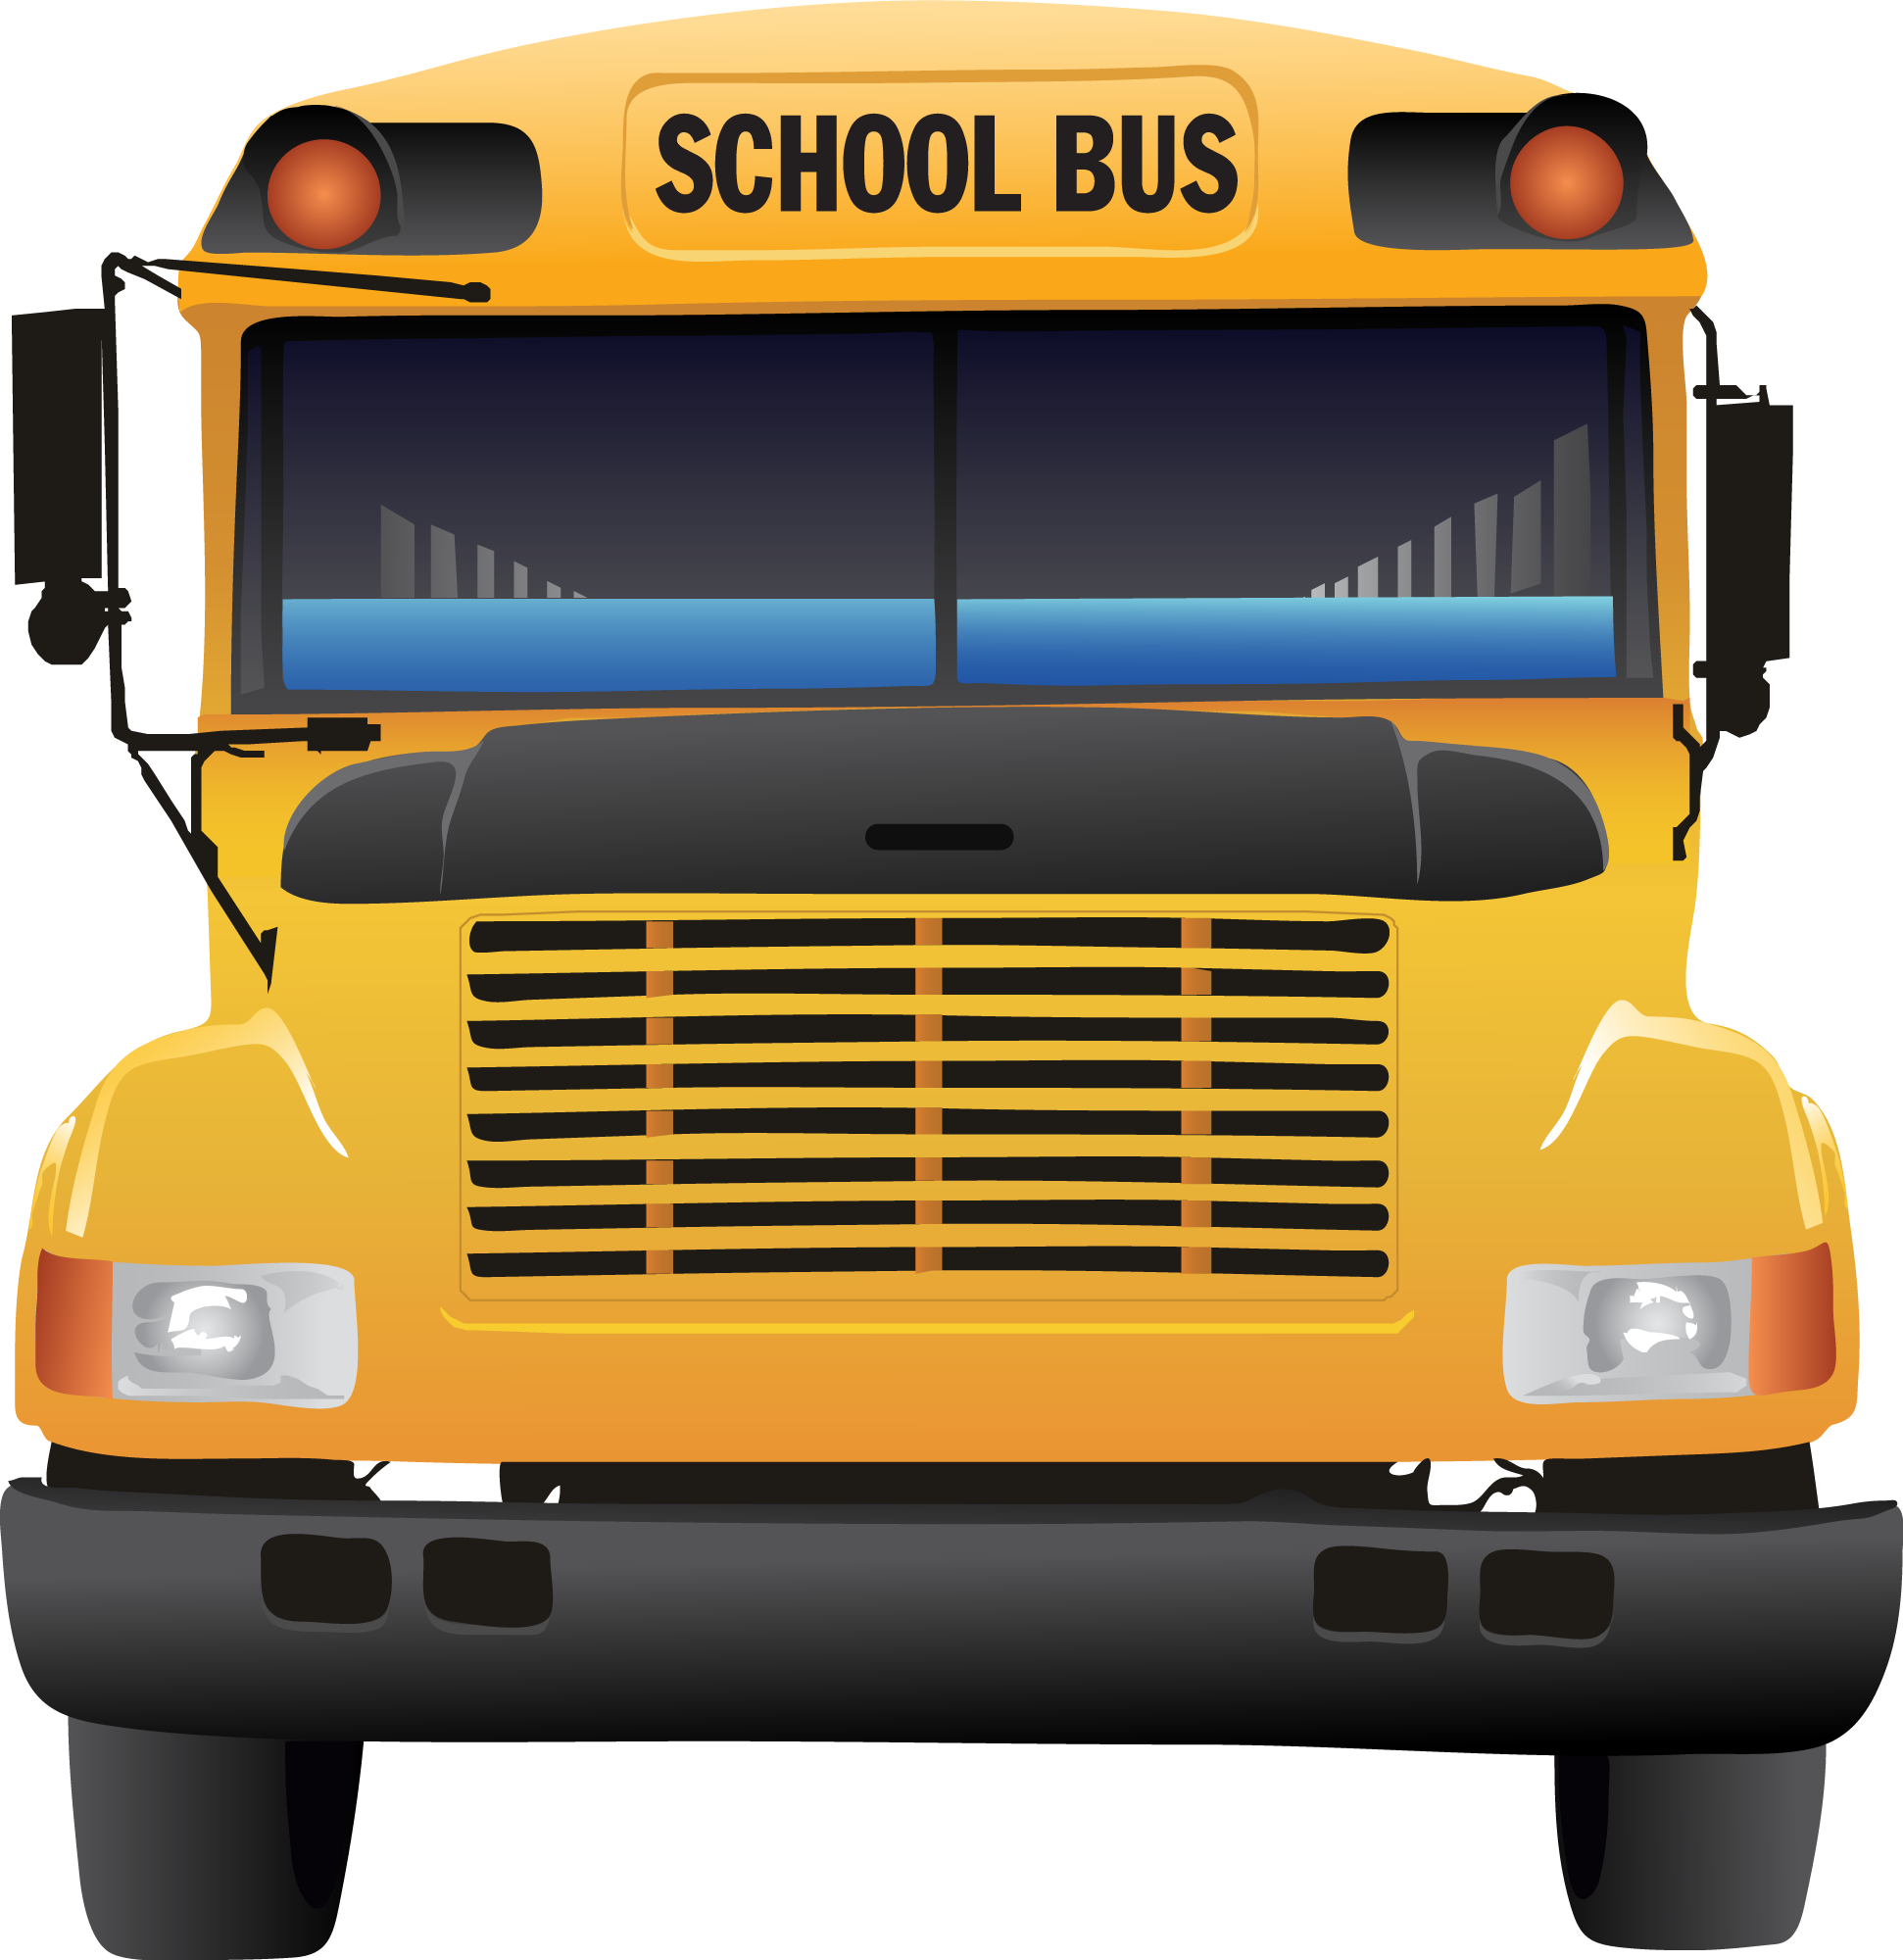 Bus front png. Images free download image